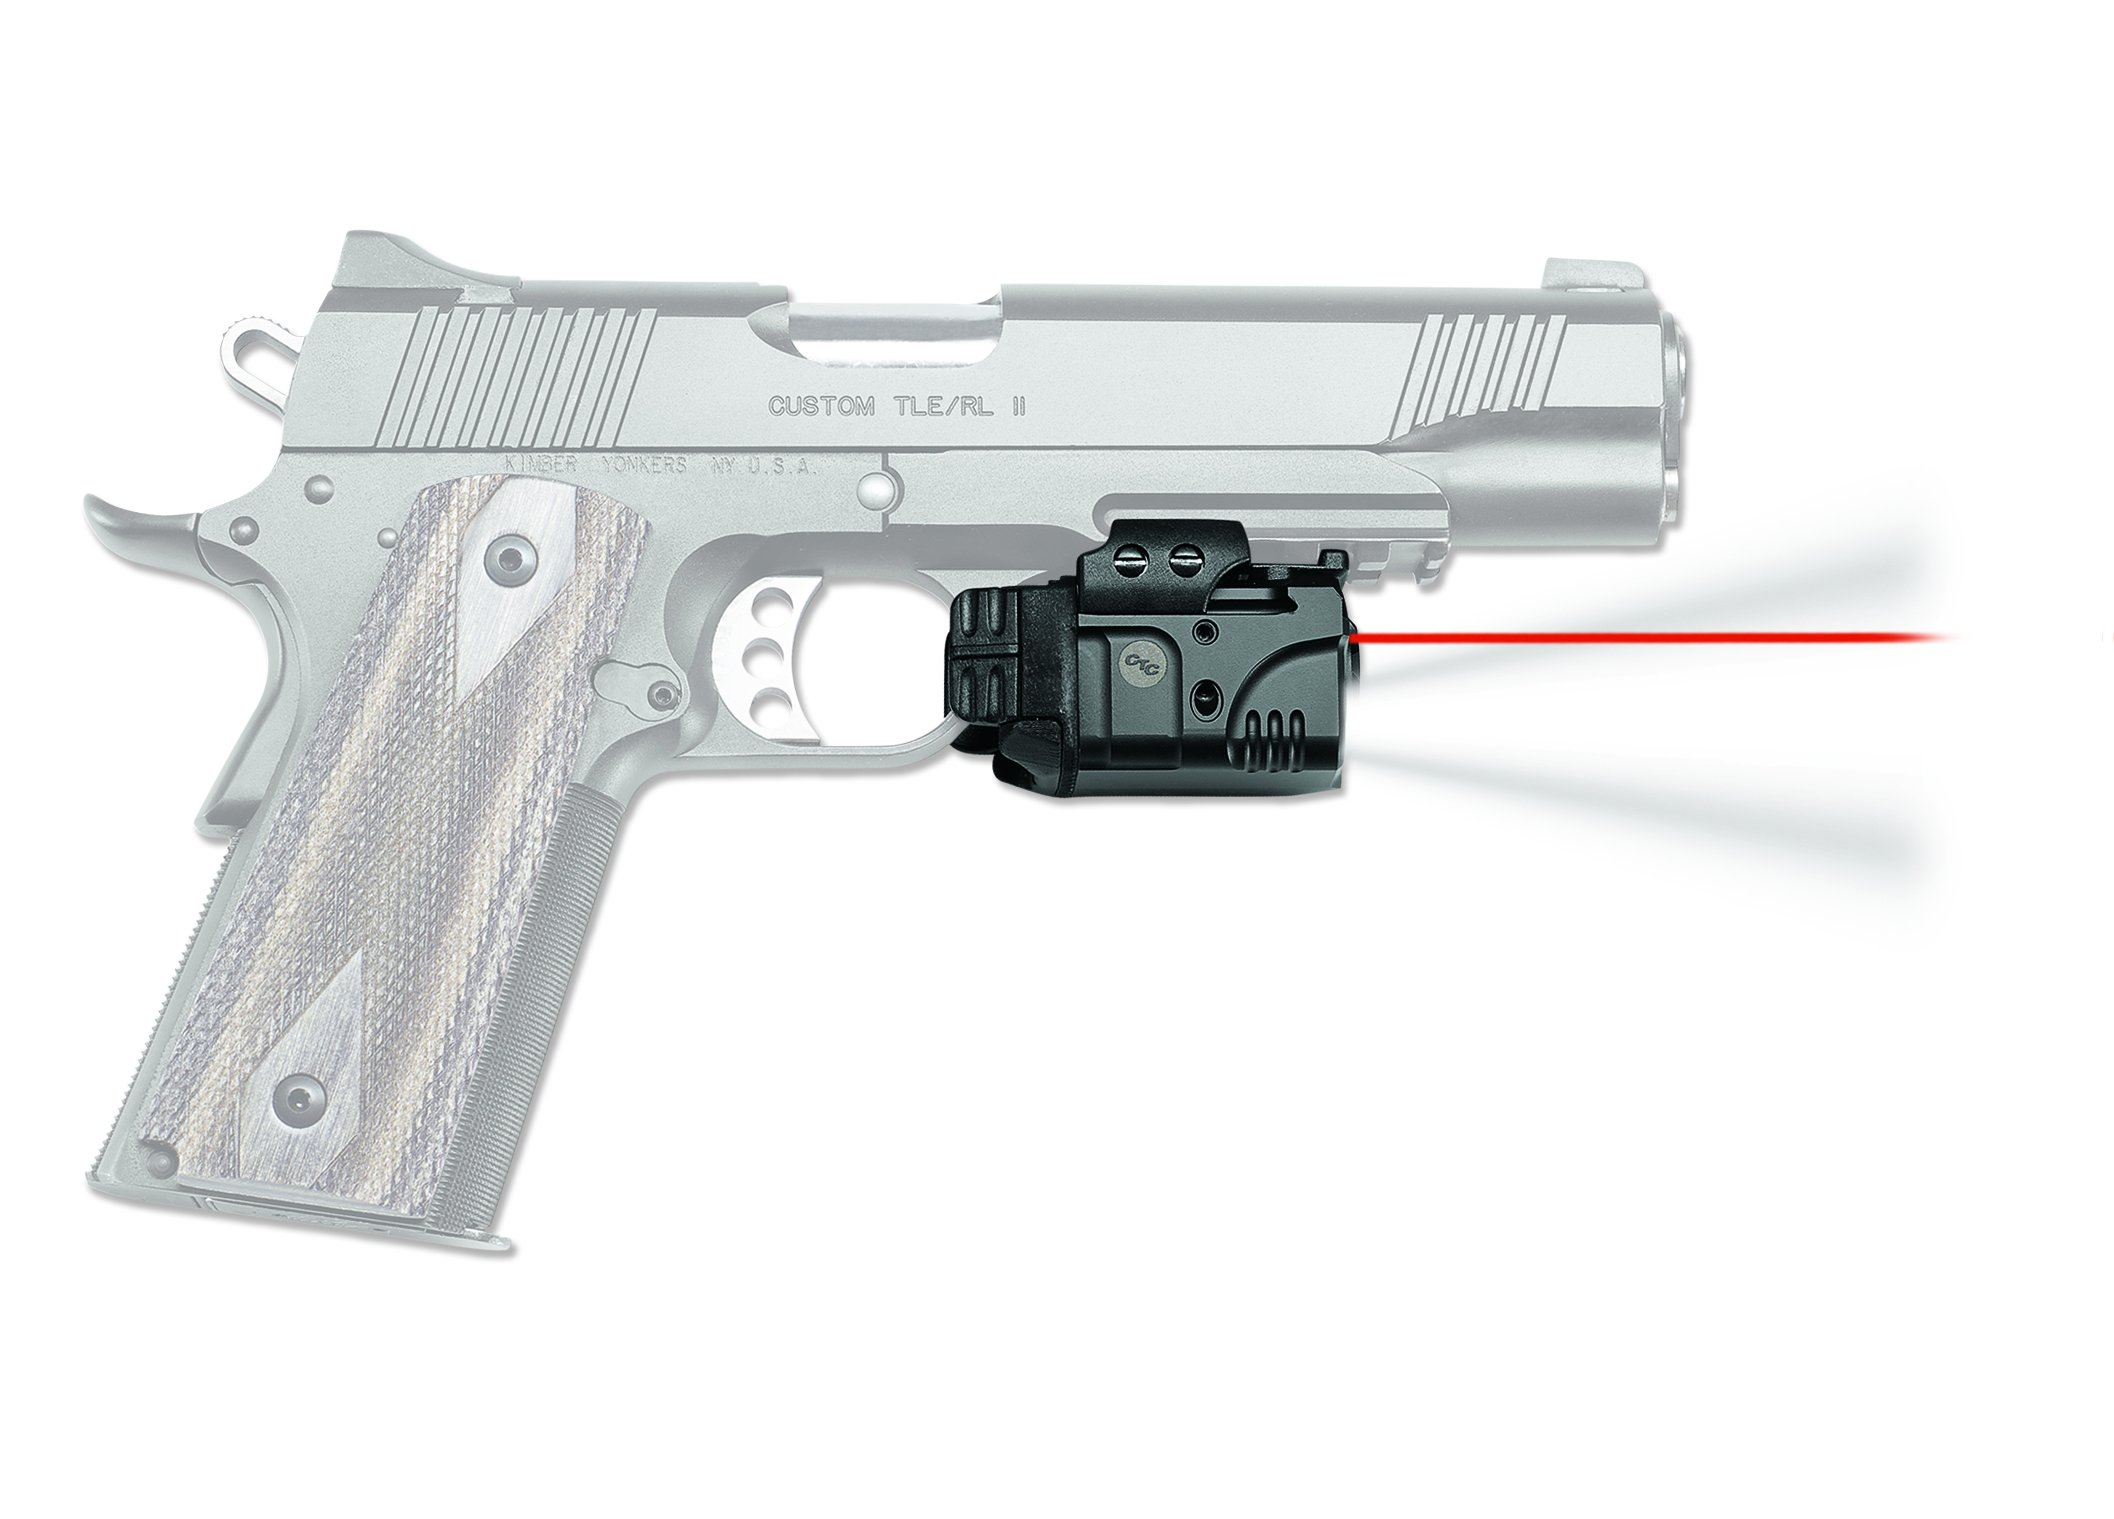 Crimson Trace CMR-205 Rail Master Pro Universal Red Laser Sight + Tactical Light by Crimson Trace (Image #4)